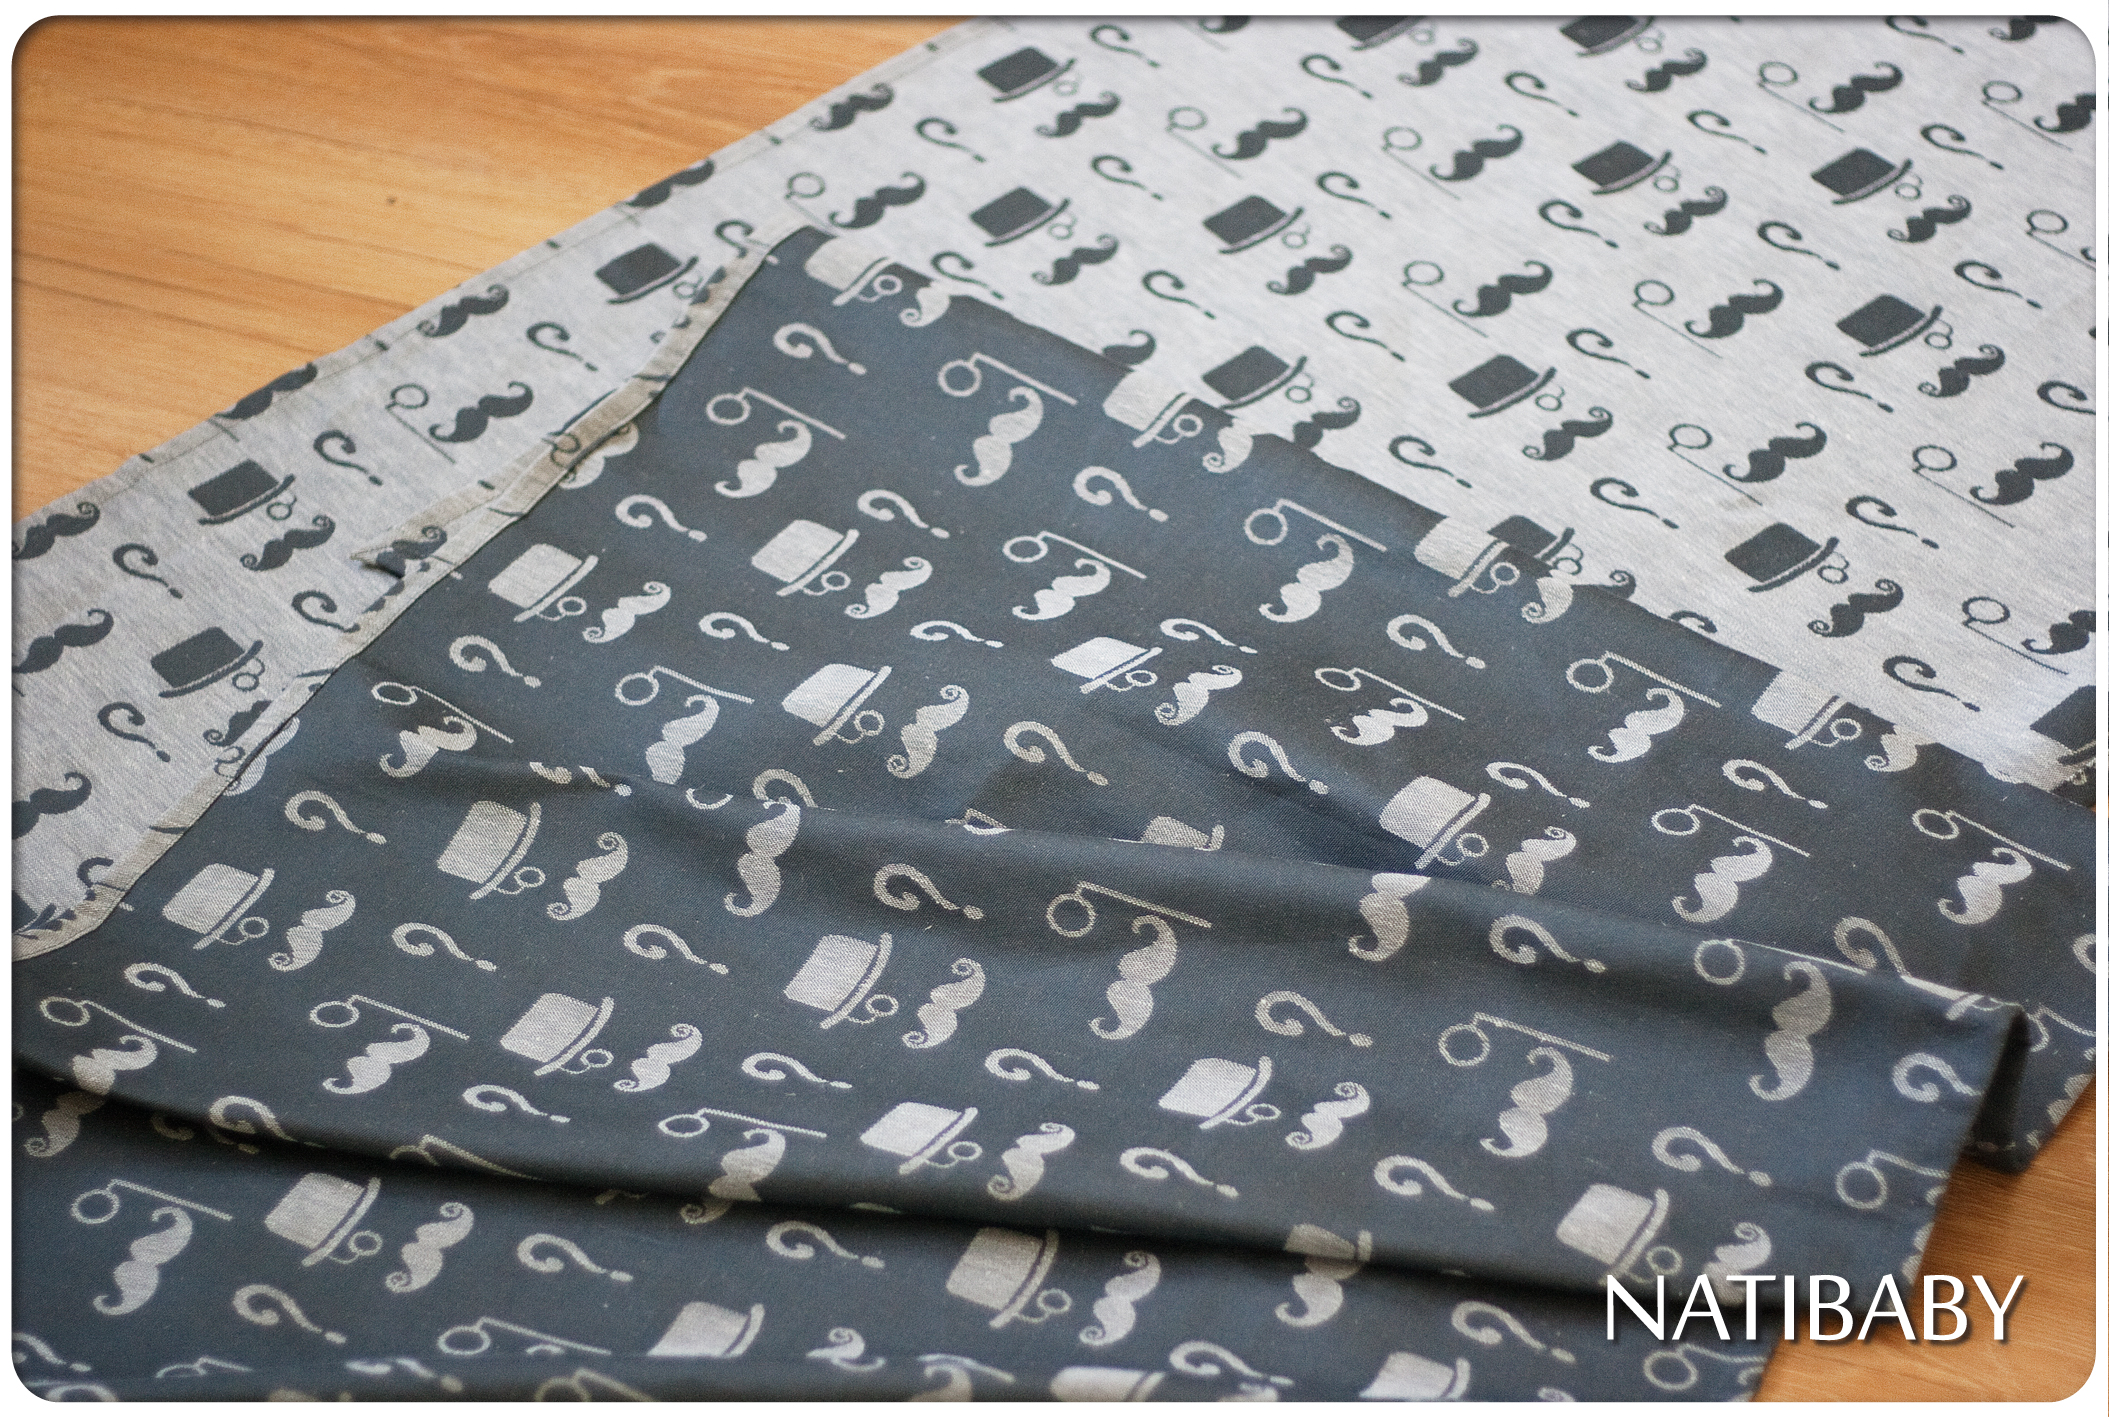 Natibaby If you mustache Wrap (hemp) Image